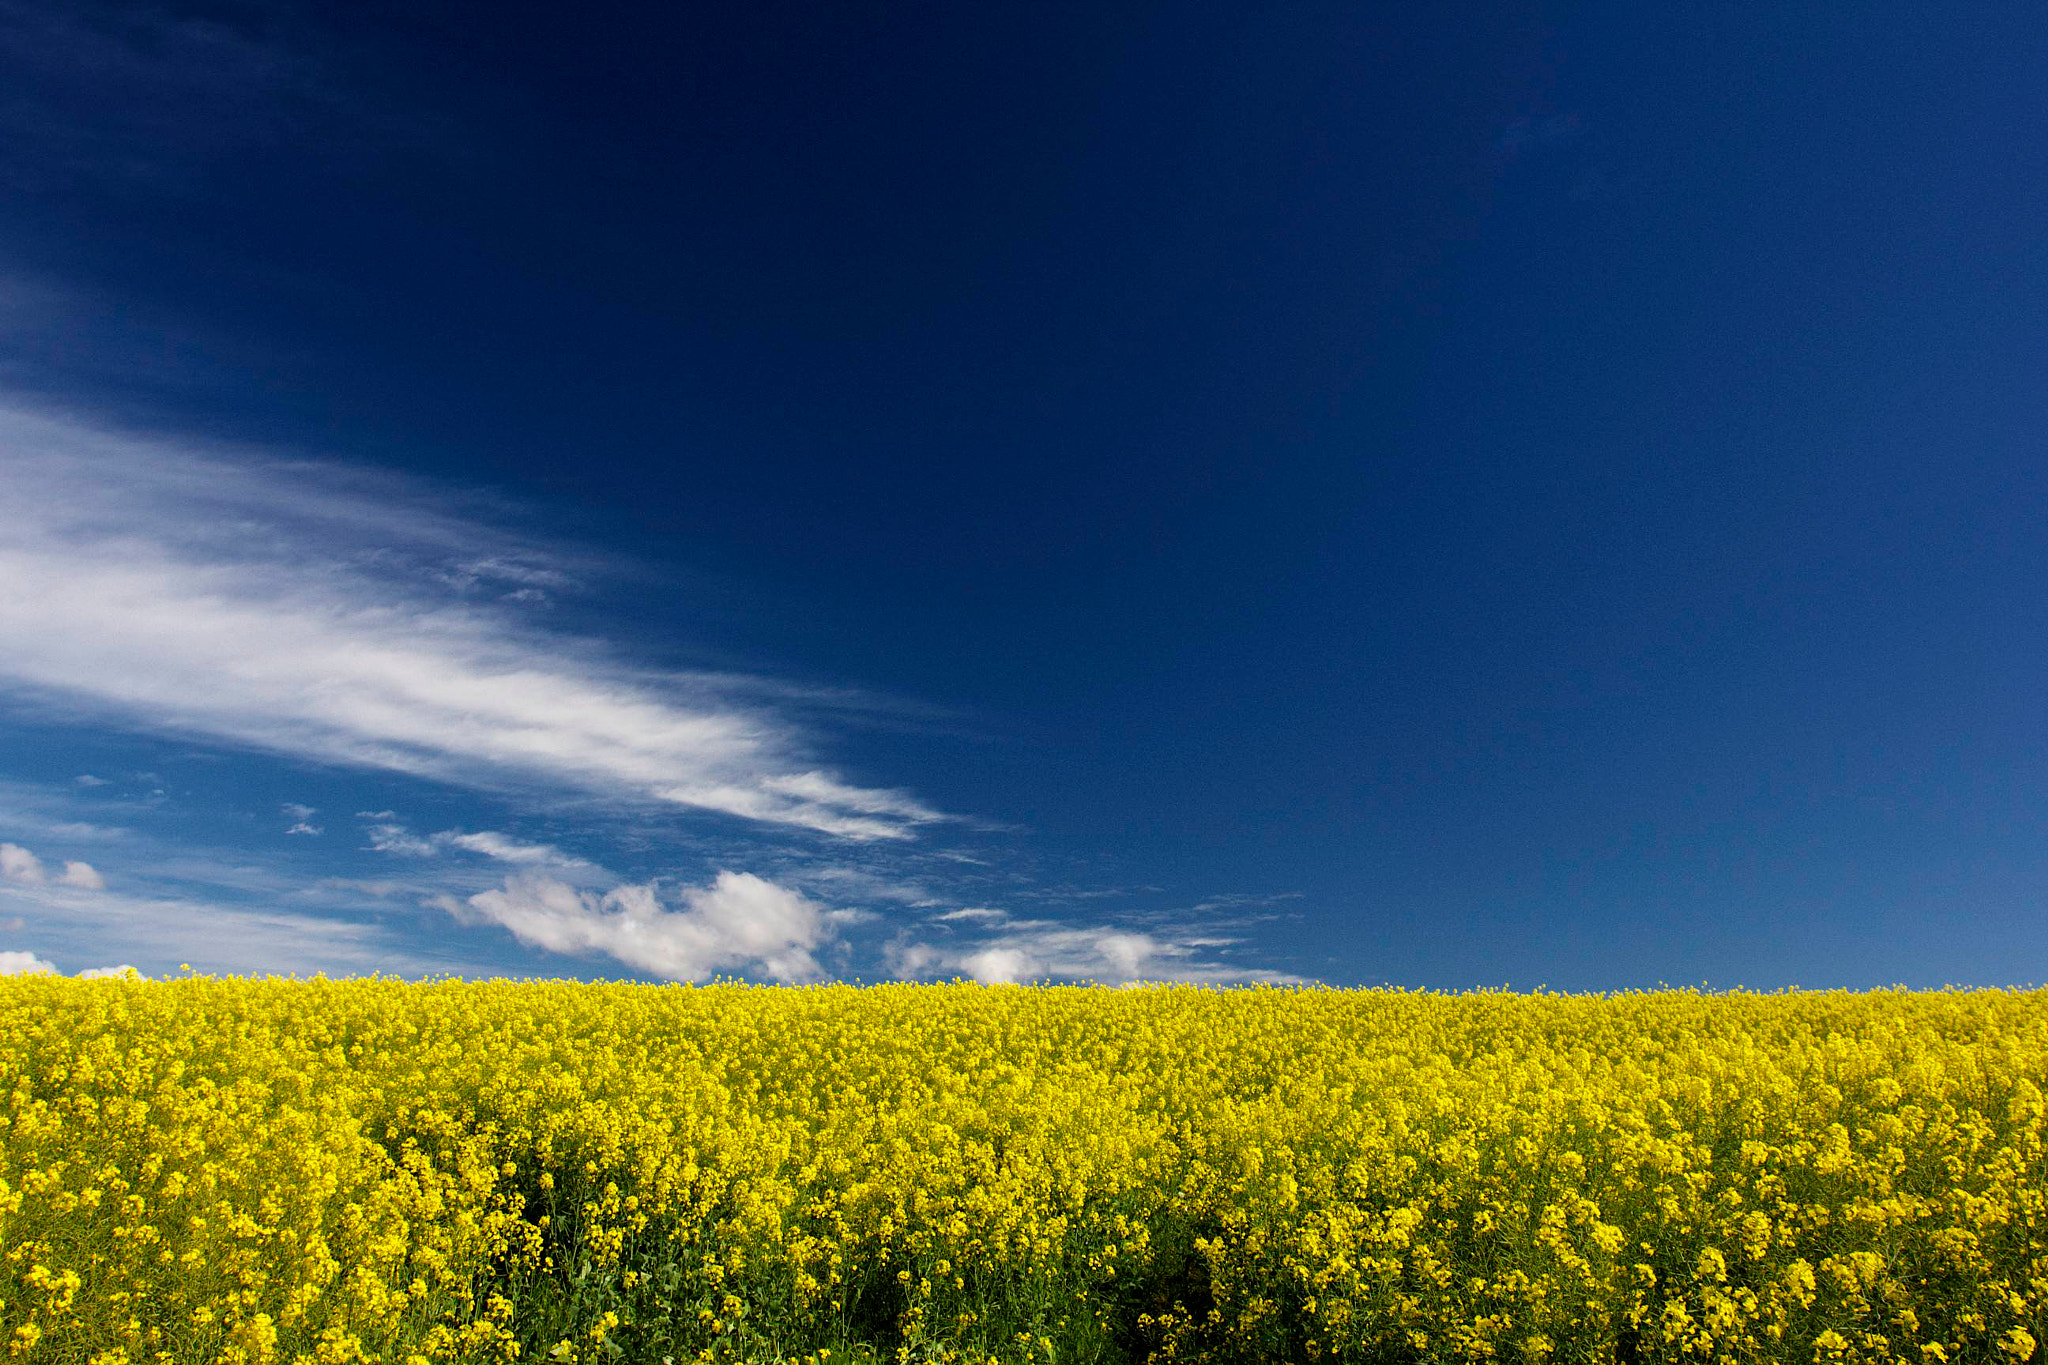 Photograph Yellow field, deep blue sky by Guido Merkelbach on 500px